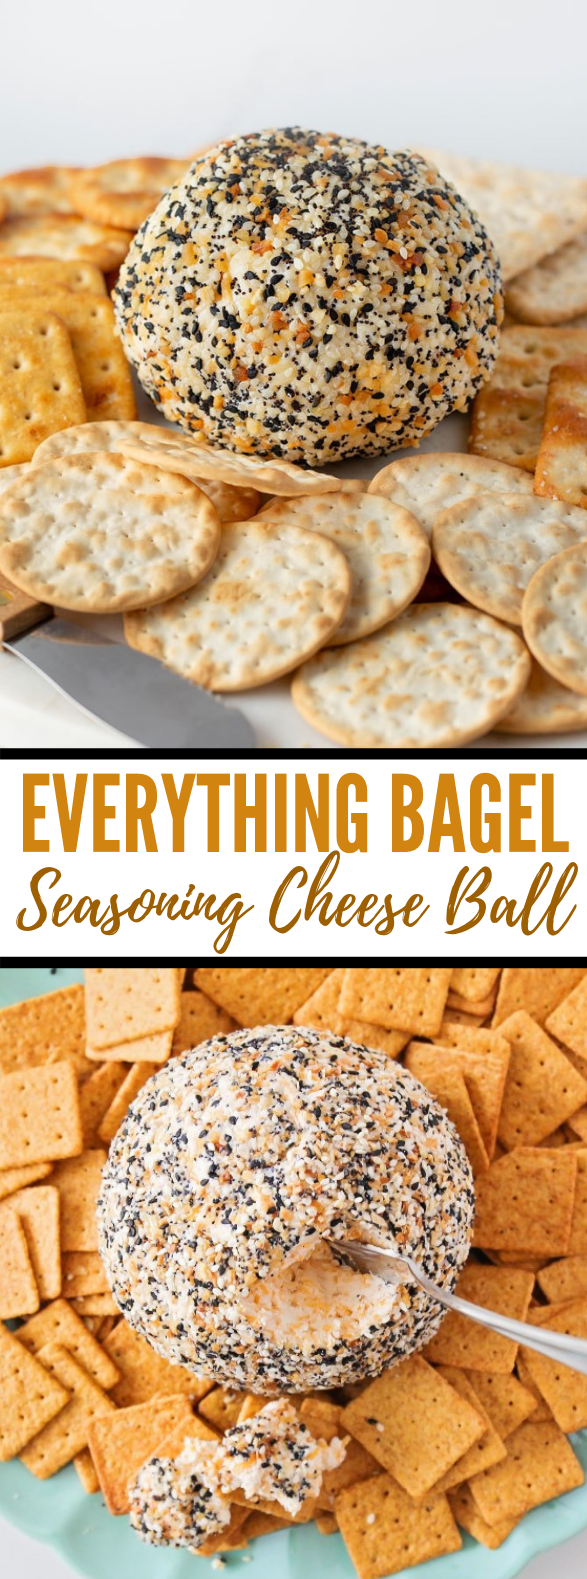 Everything Bagel Seasoning Cheese Ball Recipe – perfect for the holidays! #appetizers #holidayrecipe